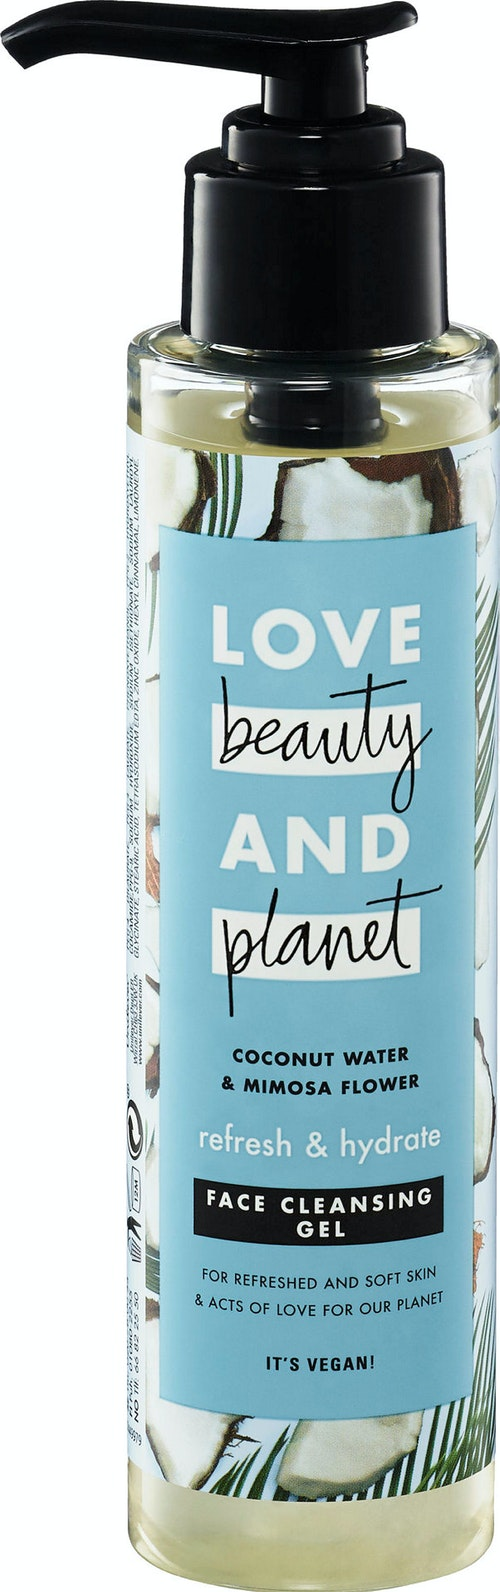 Love Beauty & Planet Refresh and Hydrate Face Cleansing Gel 125 ml